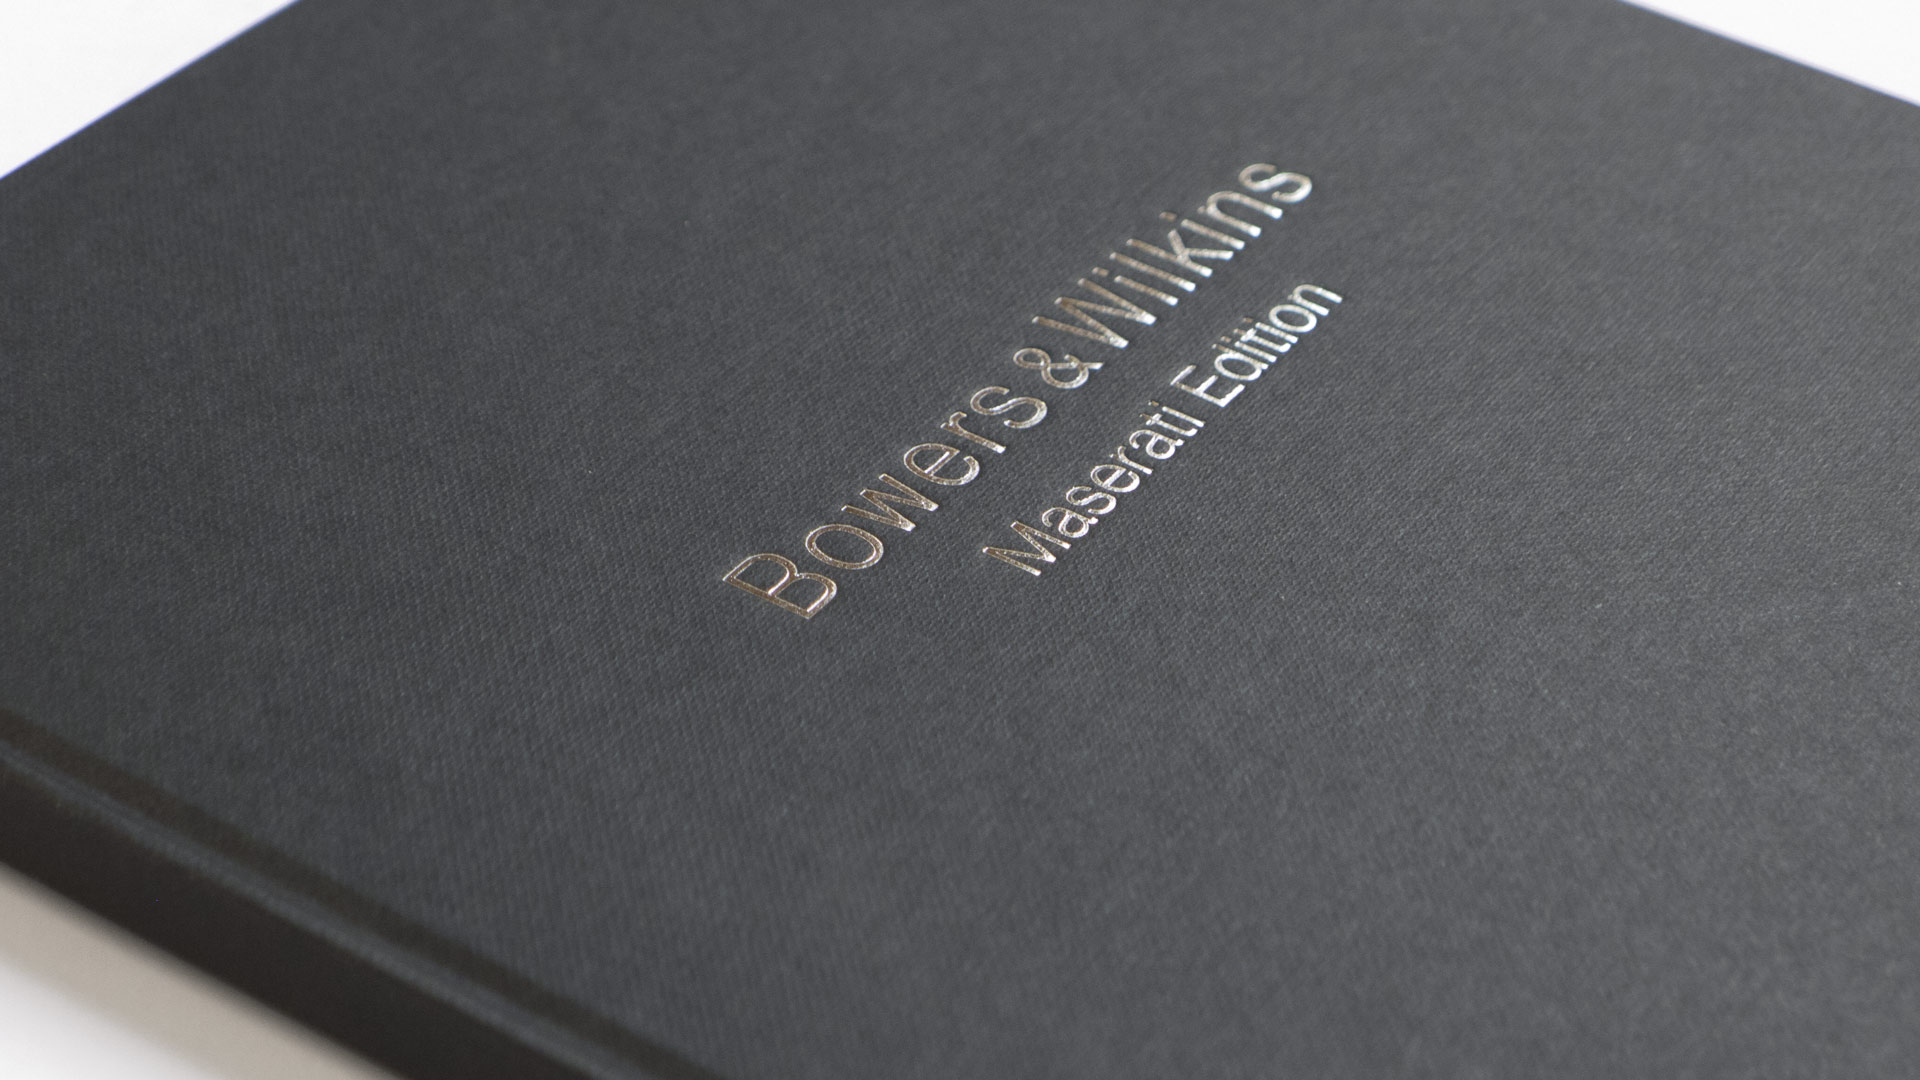 bowers andamp wilkins logo. bowers andamp wilkins logo a